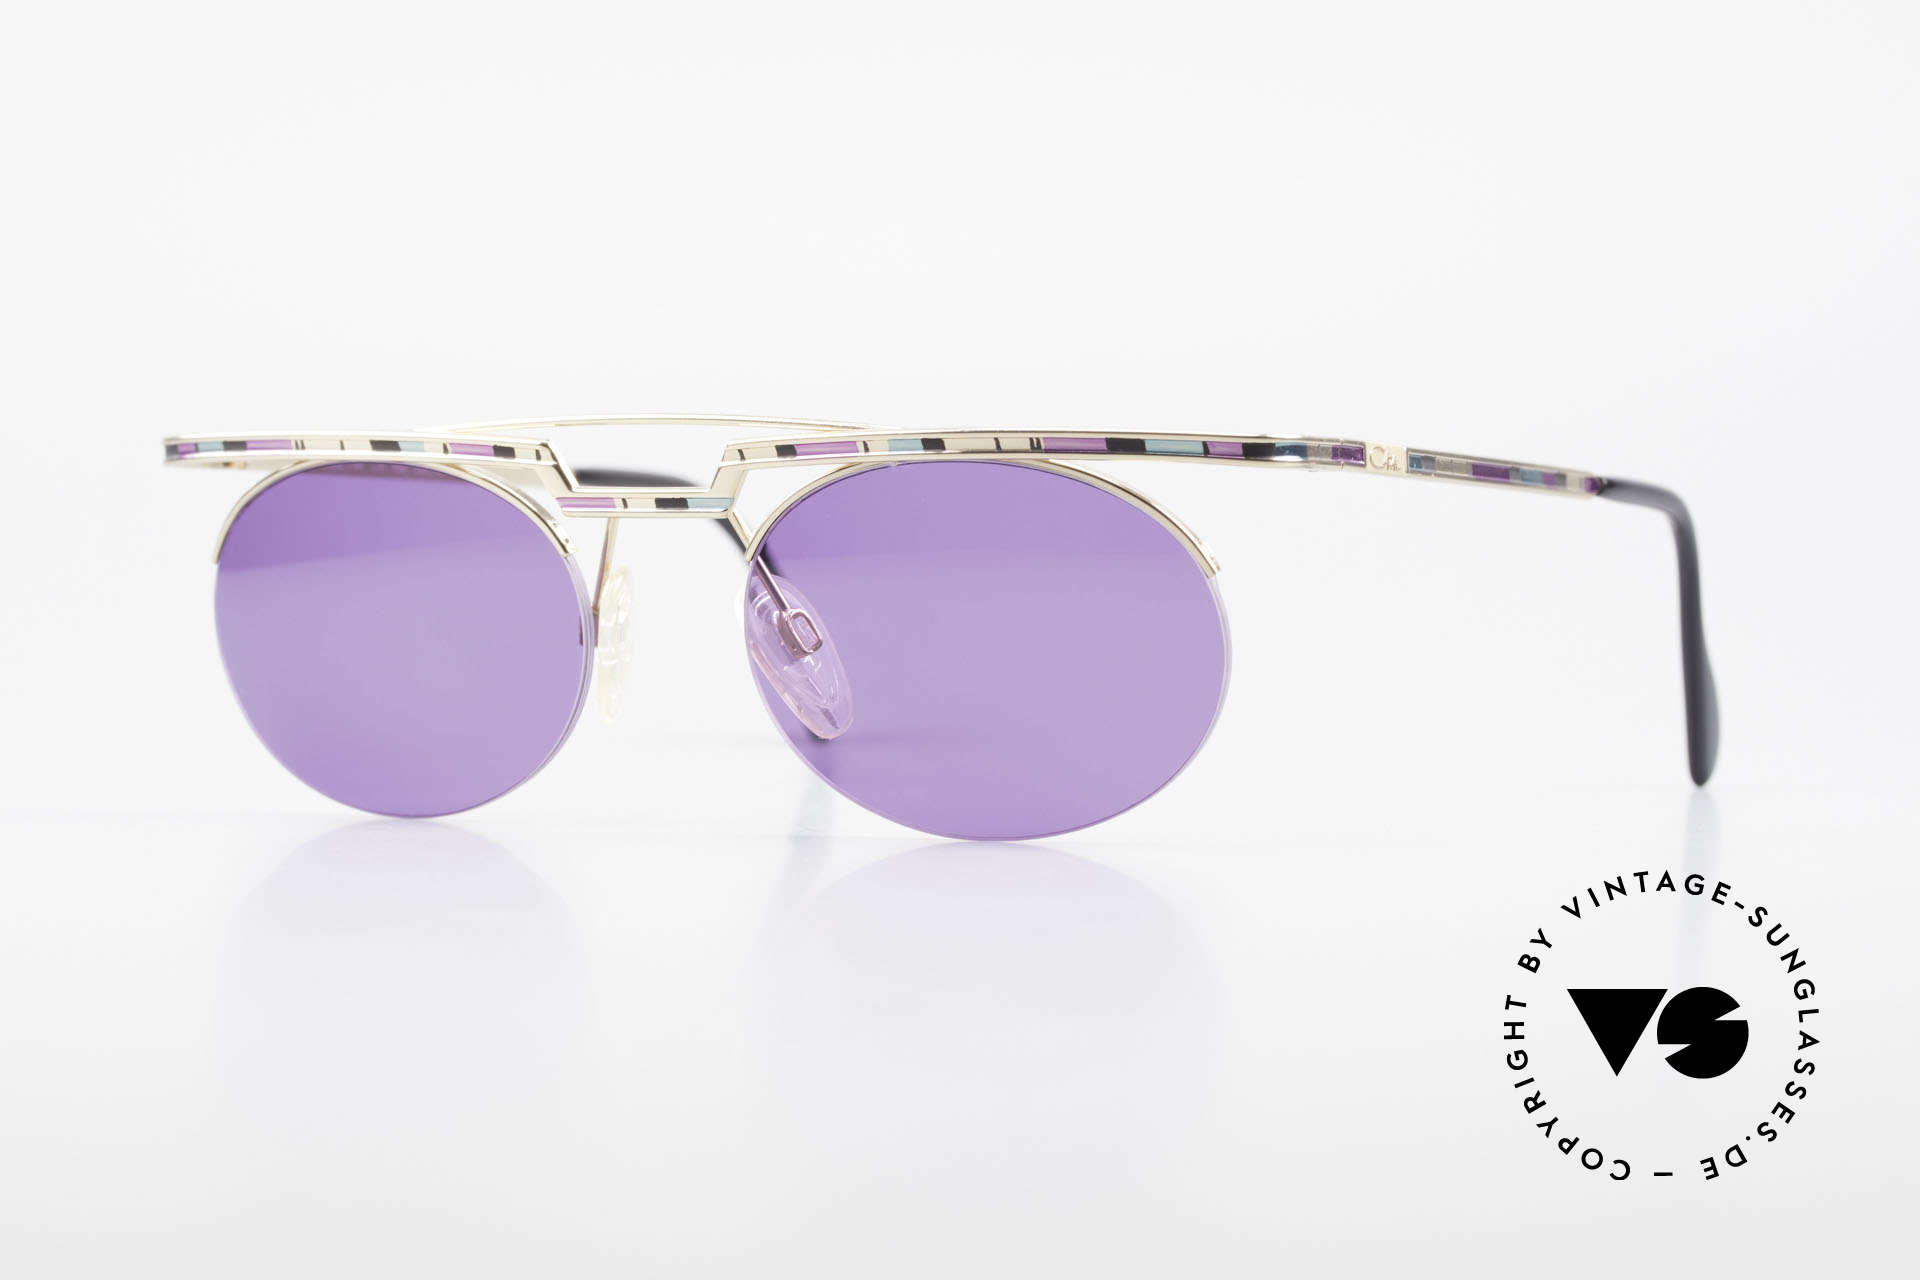 Cazal 758 No Retro Cazal Sunglasses 90s, interesting old Cazal VINTAGE sunglasses from 1997/98, Made for Men and Women